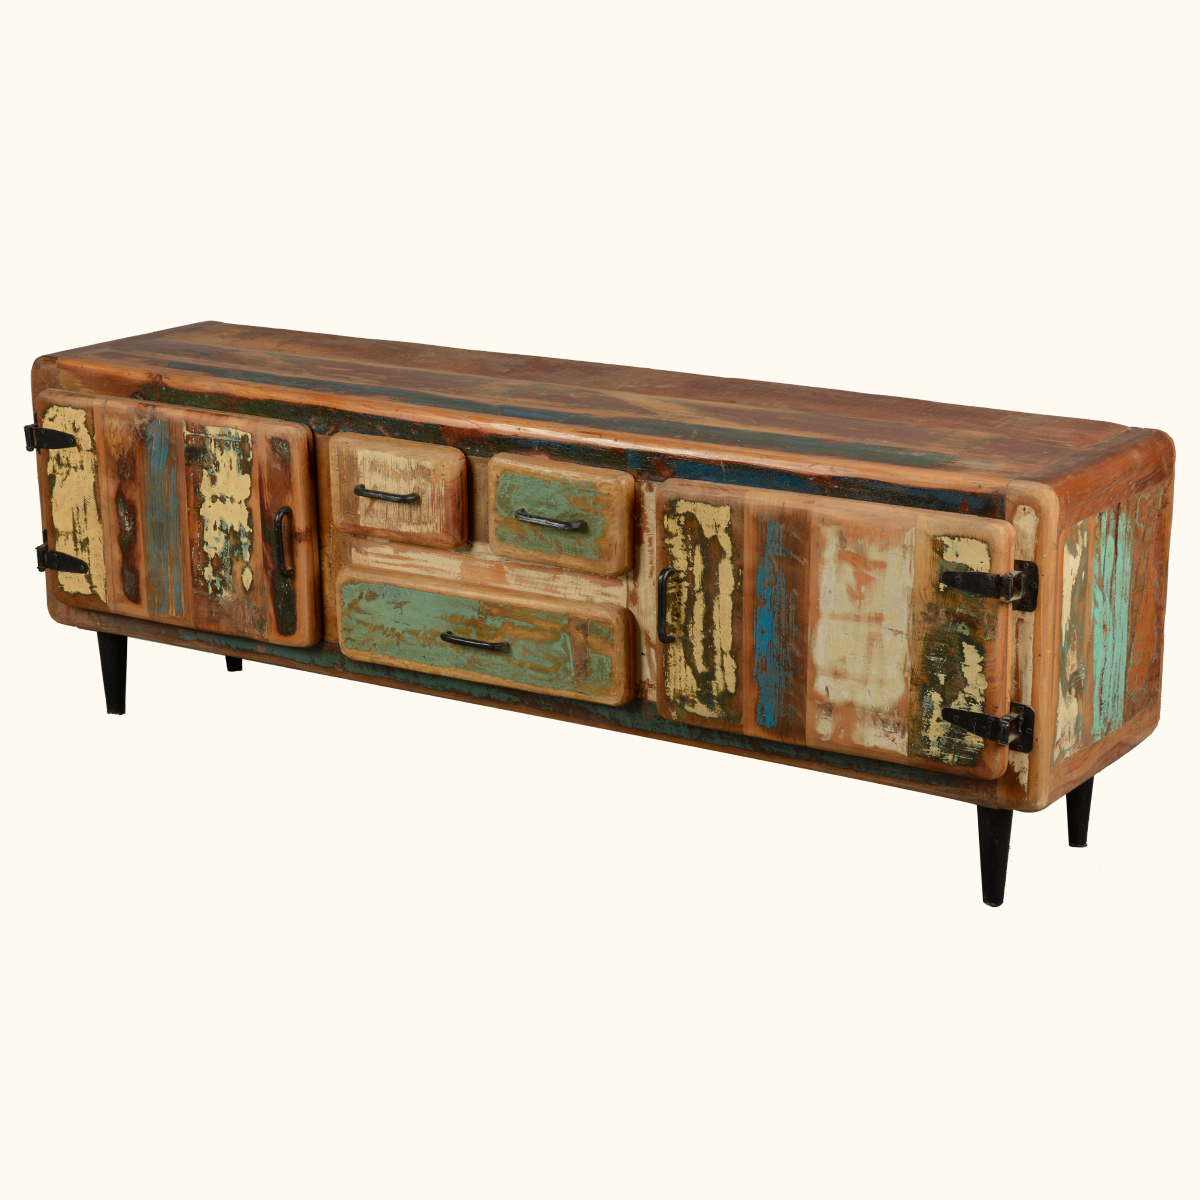 Reclaimed wood rustic media console tv stand cabinet